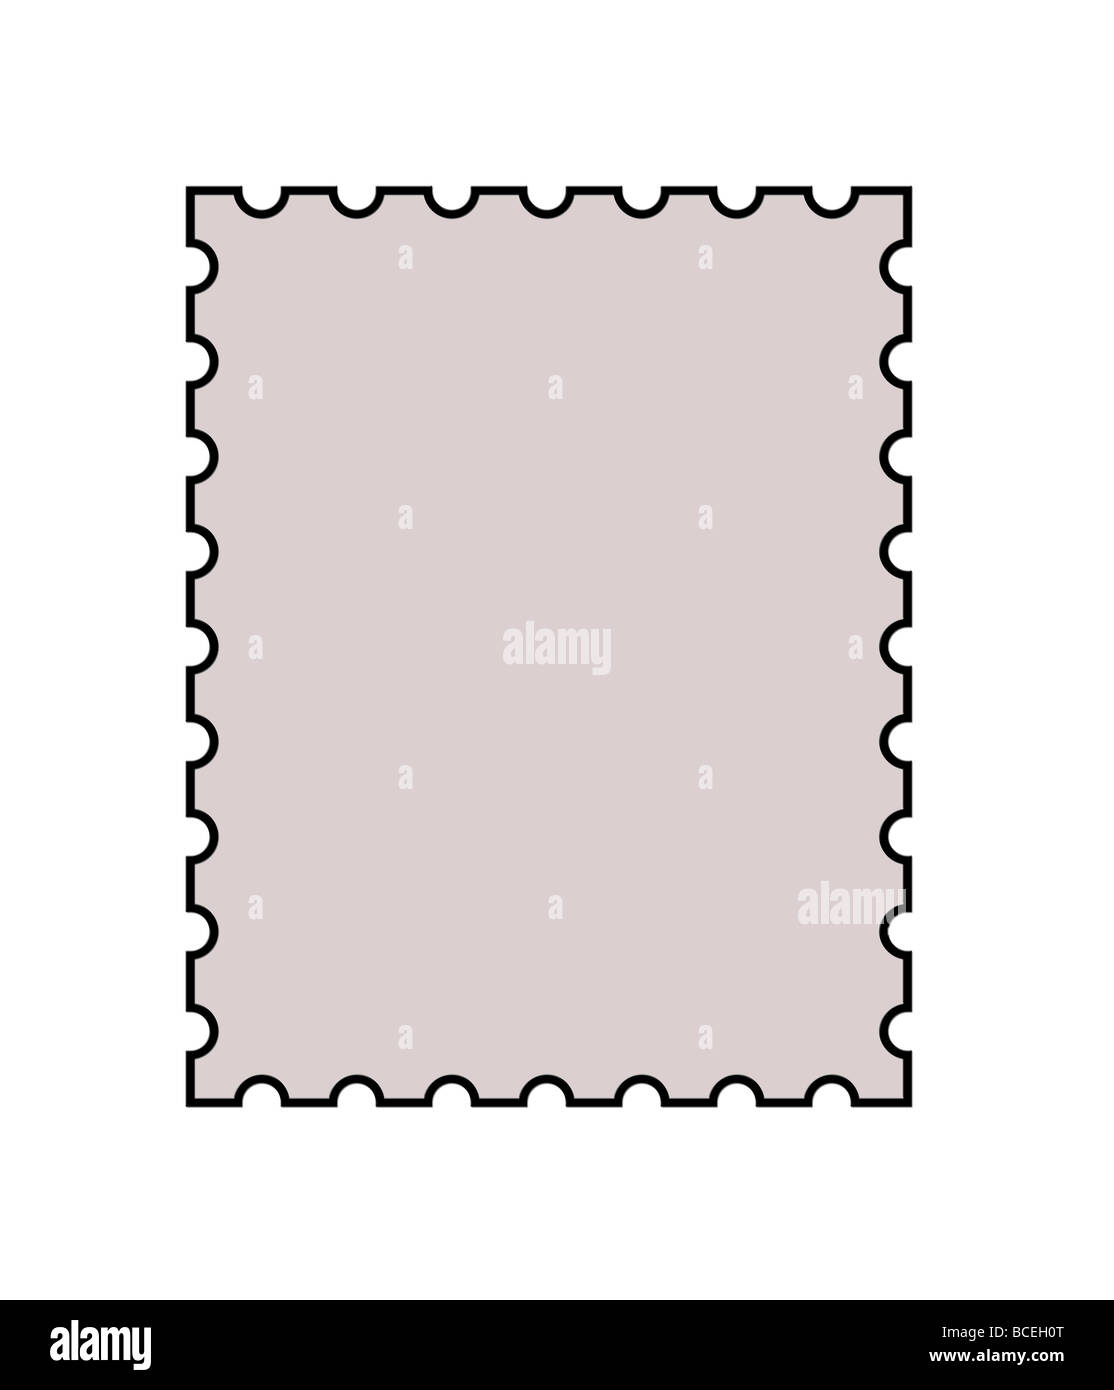 Blank postage stamp with copy space in center isolated on white background - Stock Image